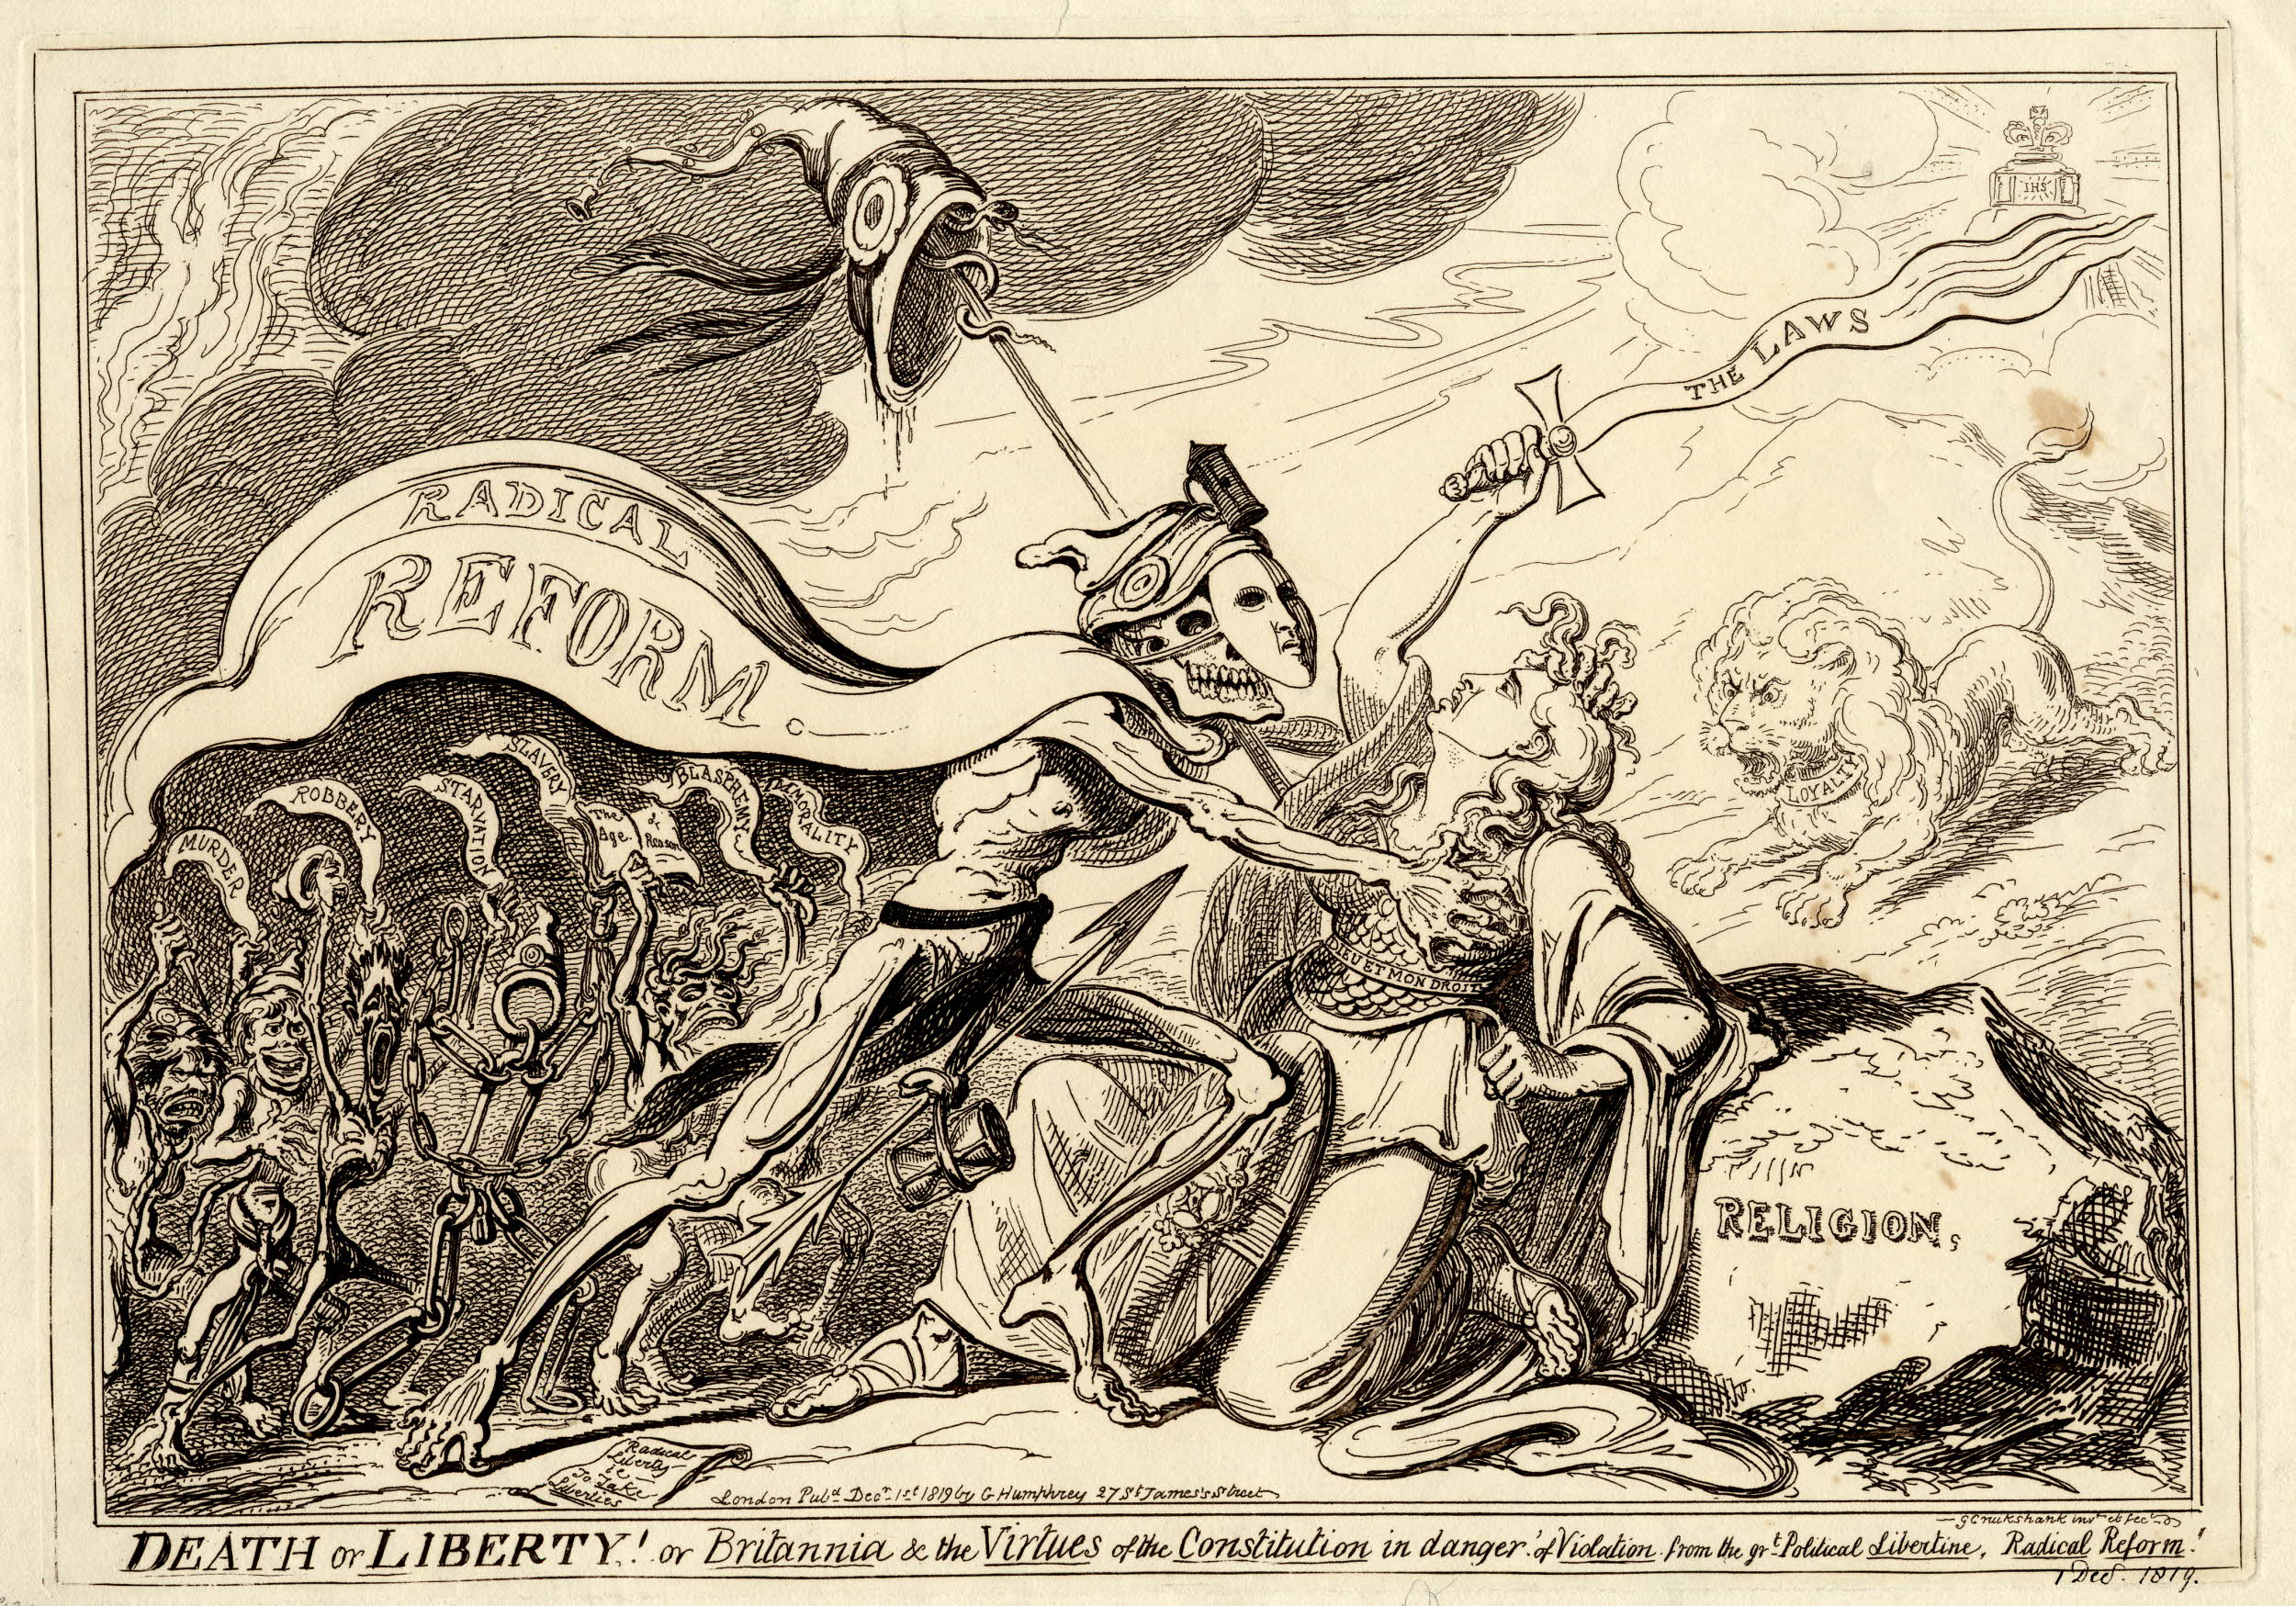 George Cruikshank, 'Death or Liberty!' (1819). ©Trustees of the British Museum. Used under a Creative Commons CC BY-NC-SA 4.0 license.